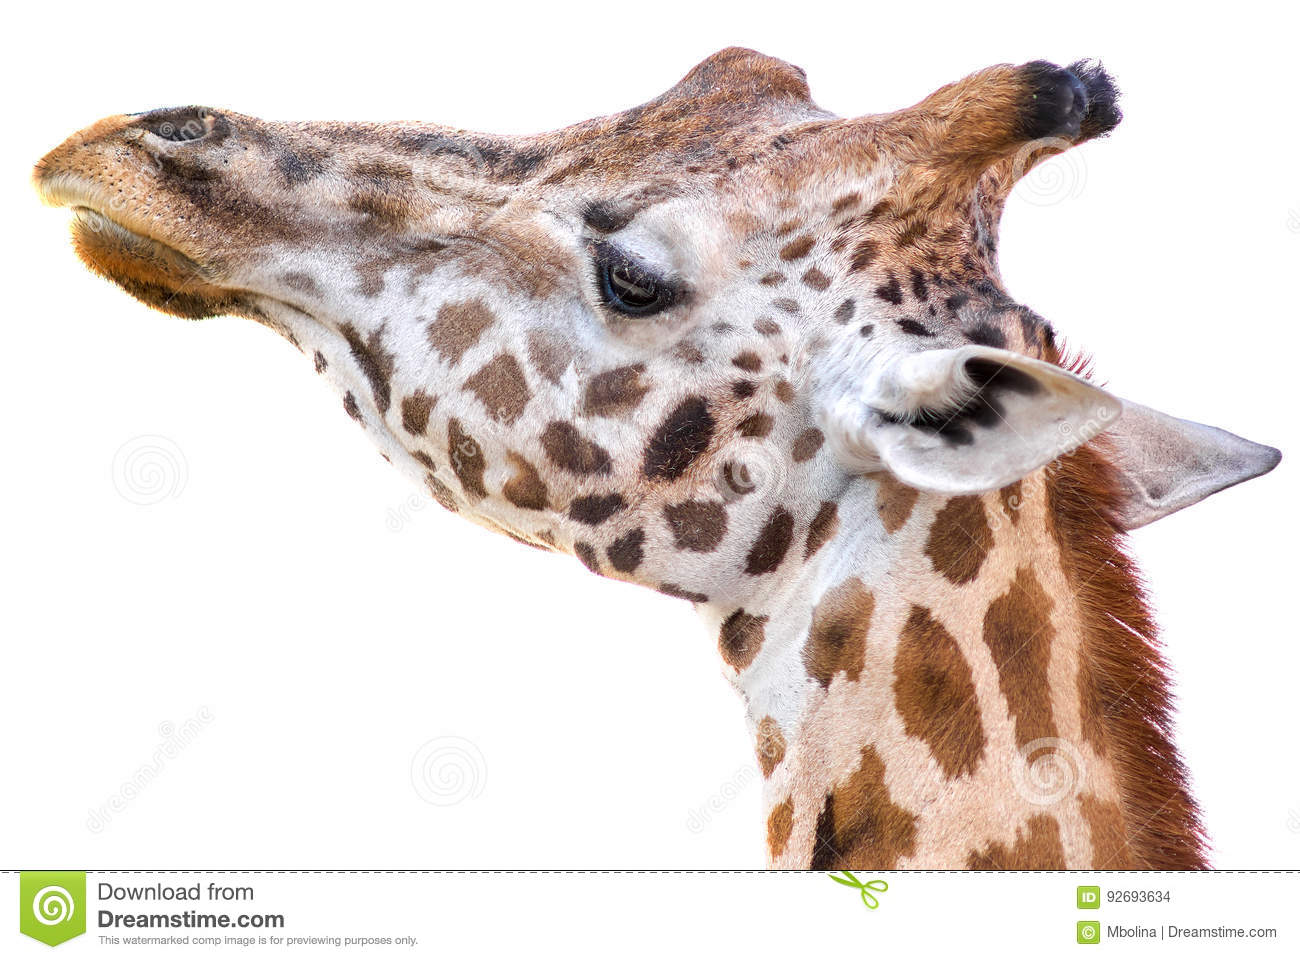 Giraffe portrait on white background